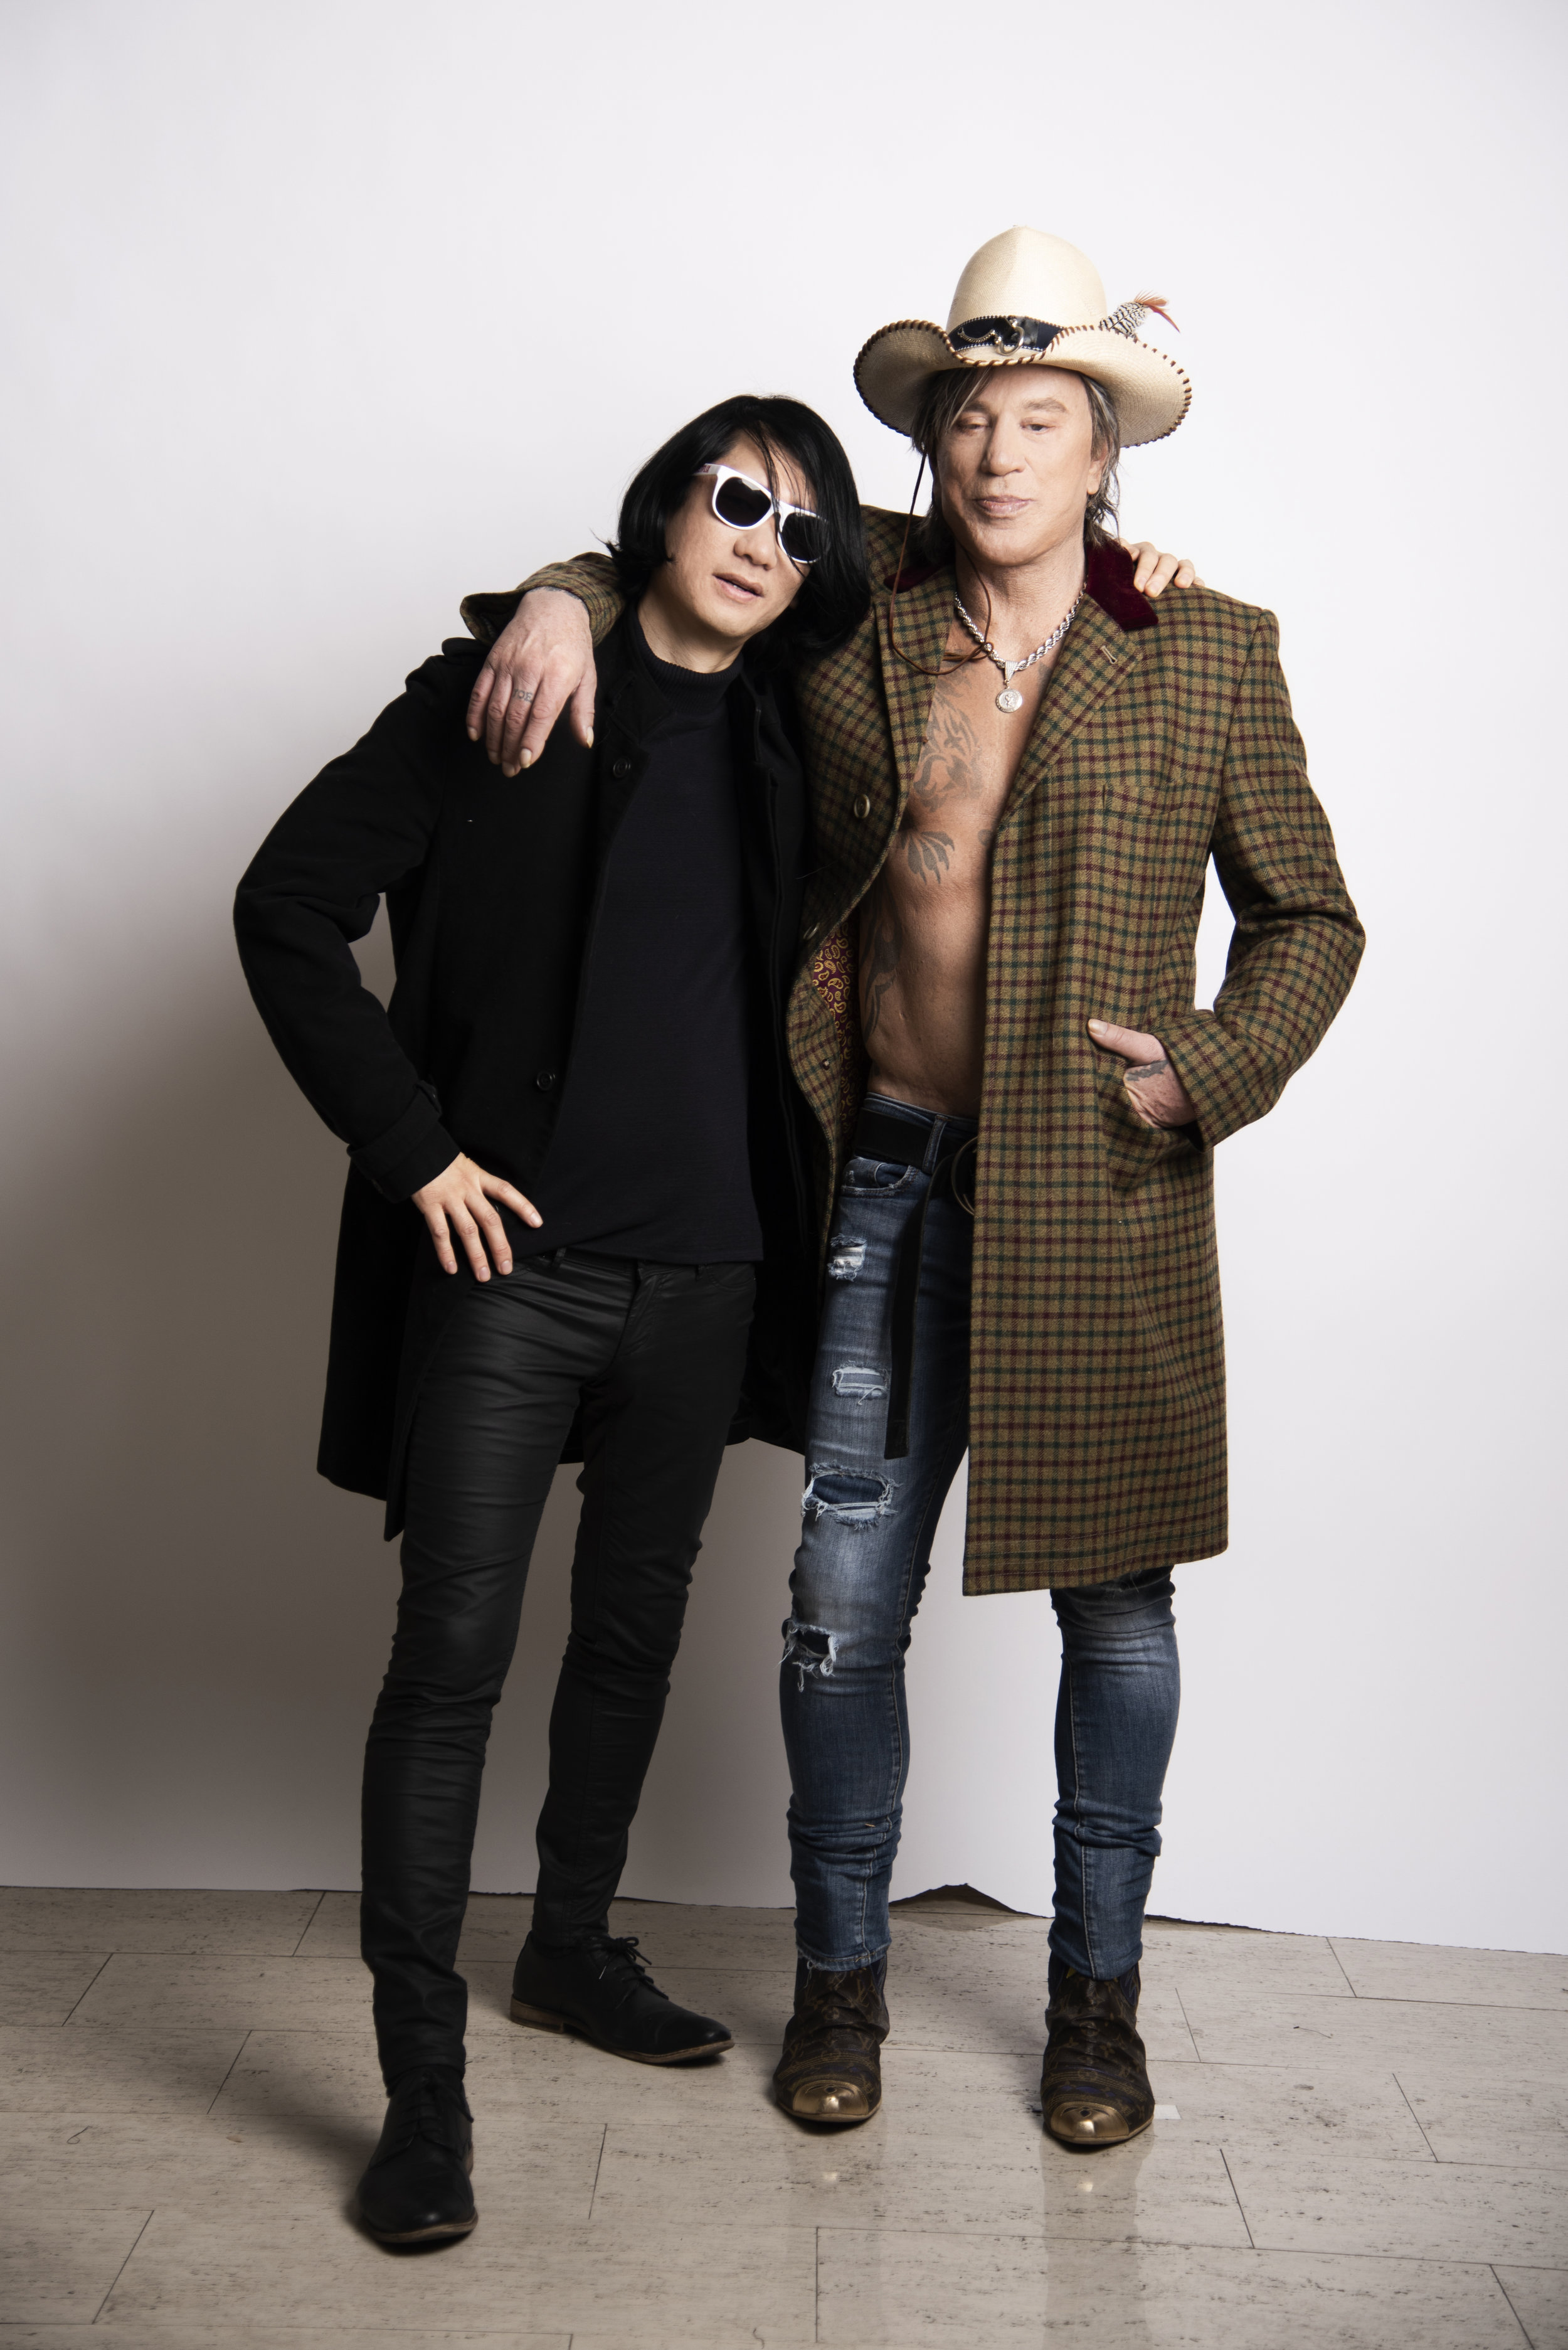 Brian Metcalf and Mickey Rourke